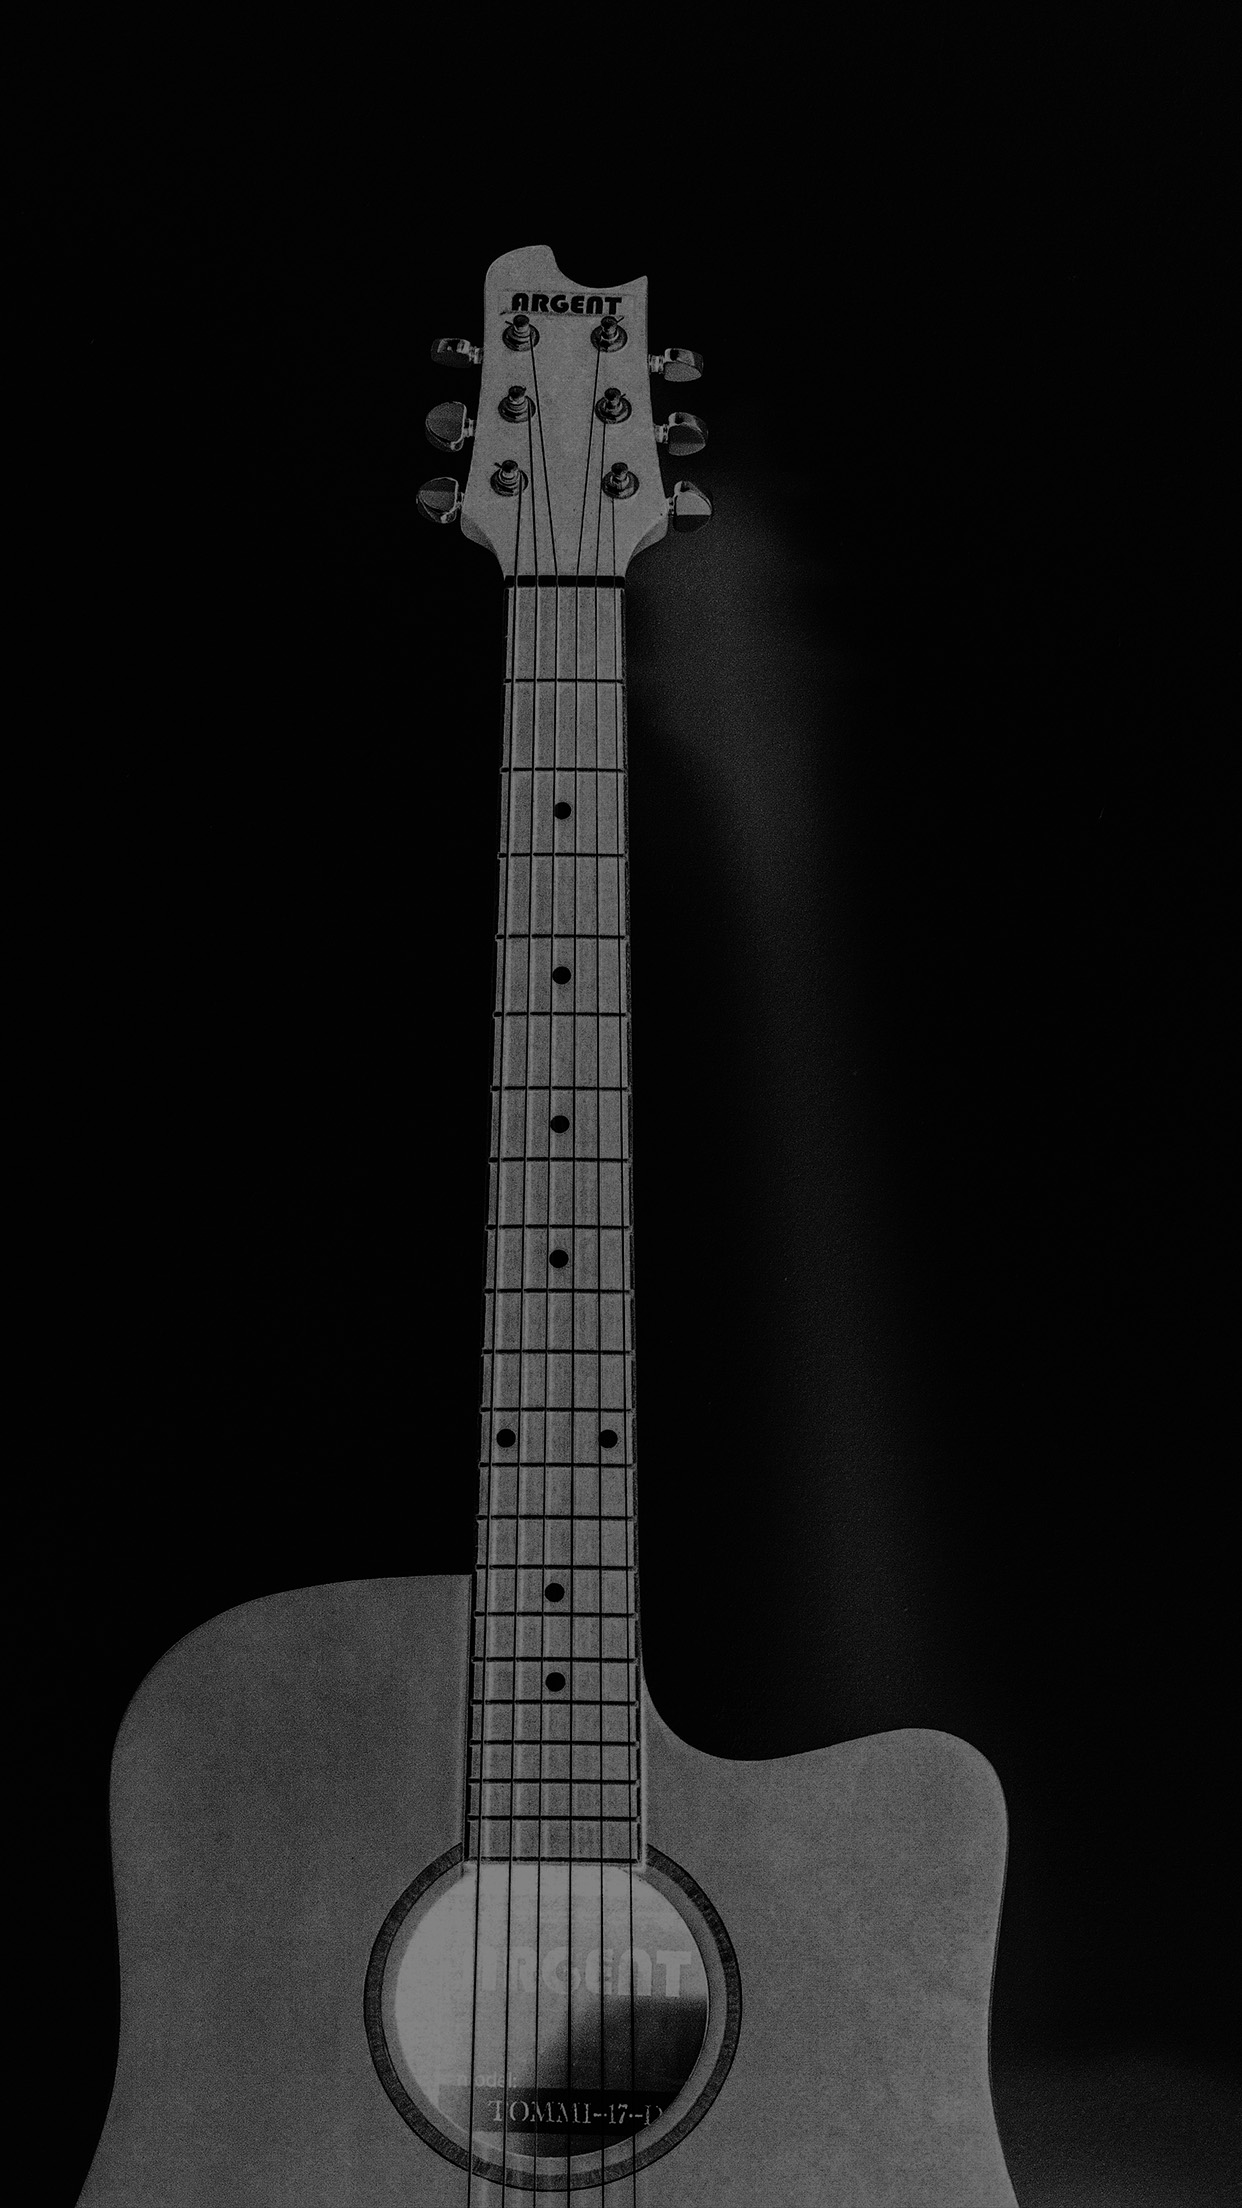 Mw80 Guitar Art Bw Dark Music Song Black